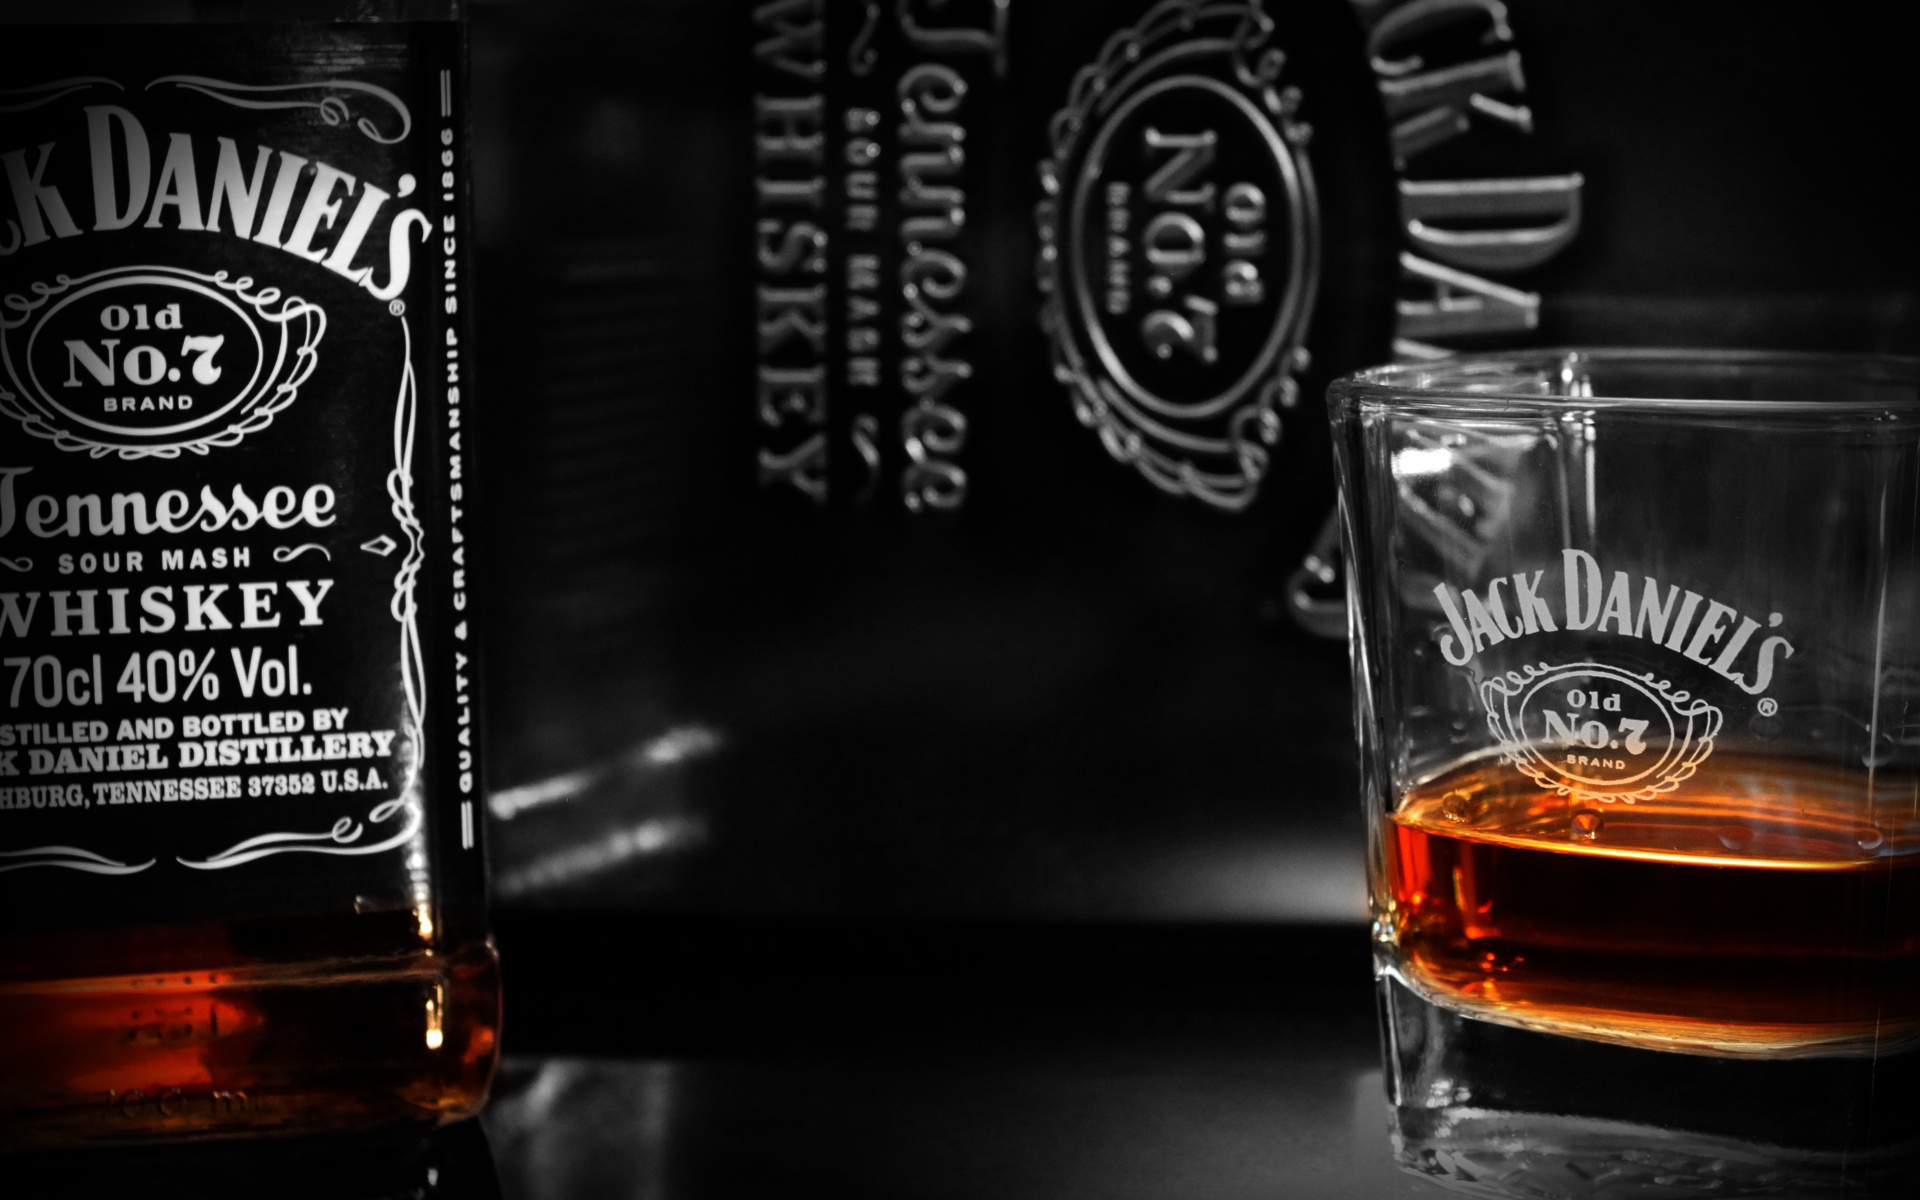 Jack Daniels Full HD Wallpaper And Background Image